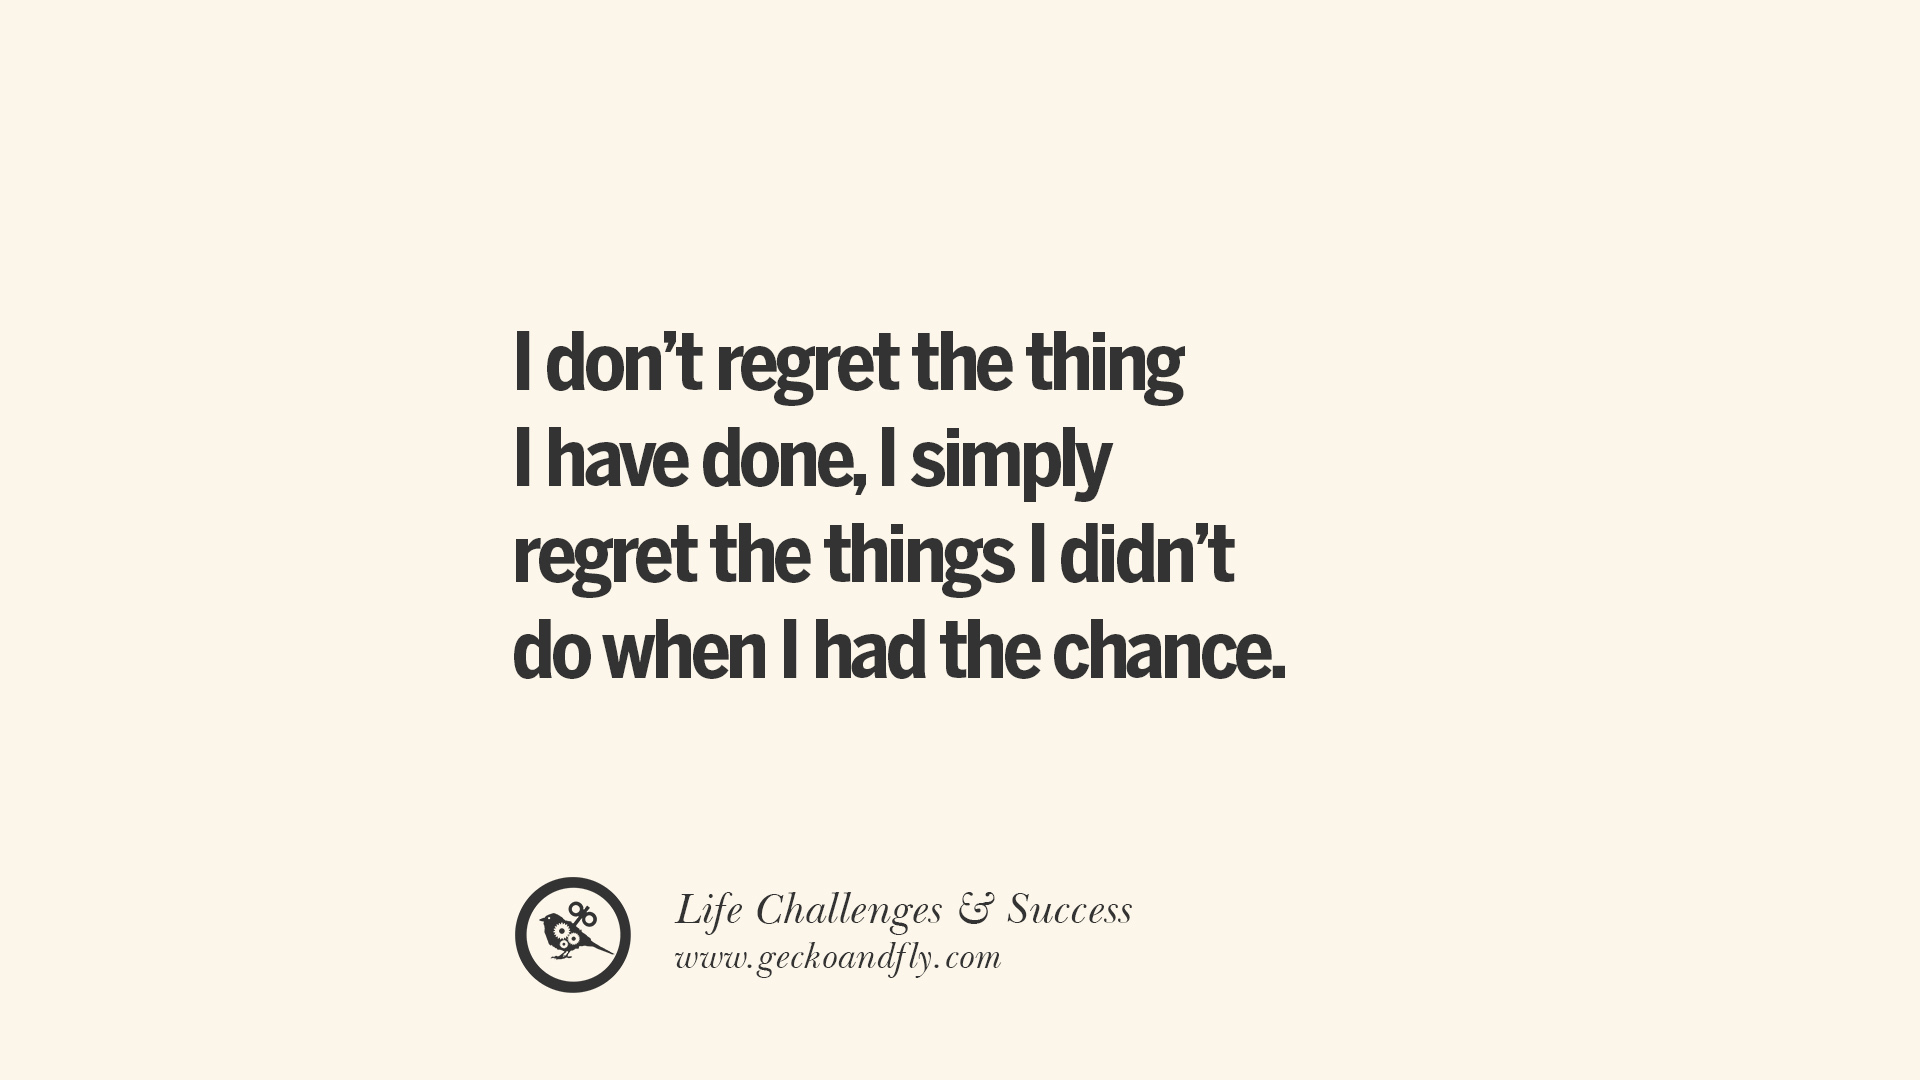 Things I Do Regret Dont Had Regret Didnt I I Things Done Chance I Have I Wen